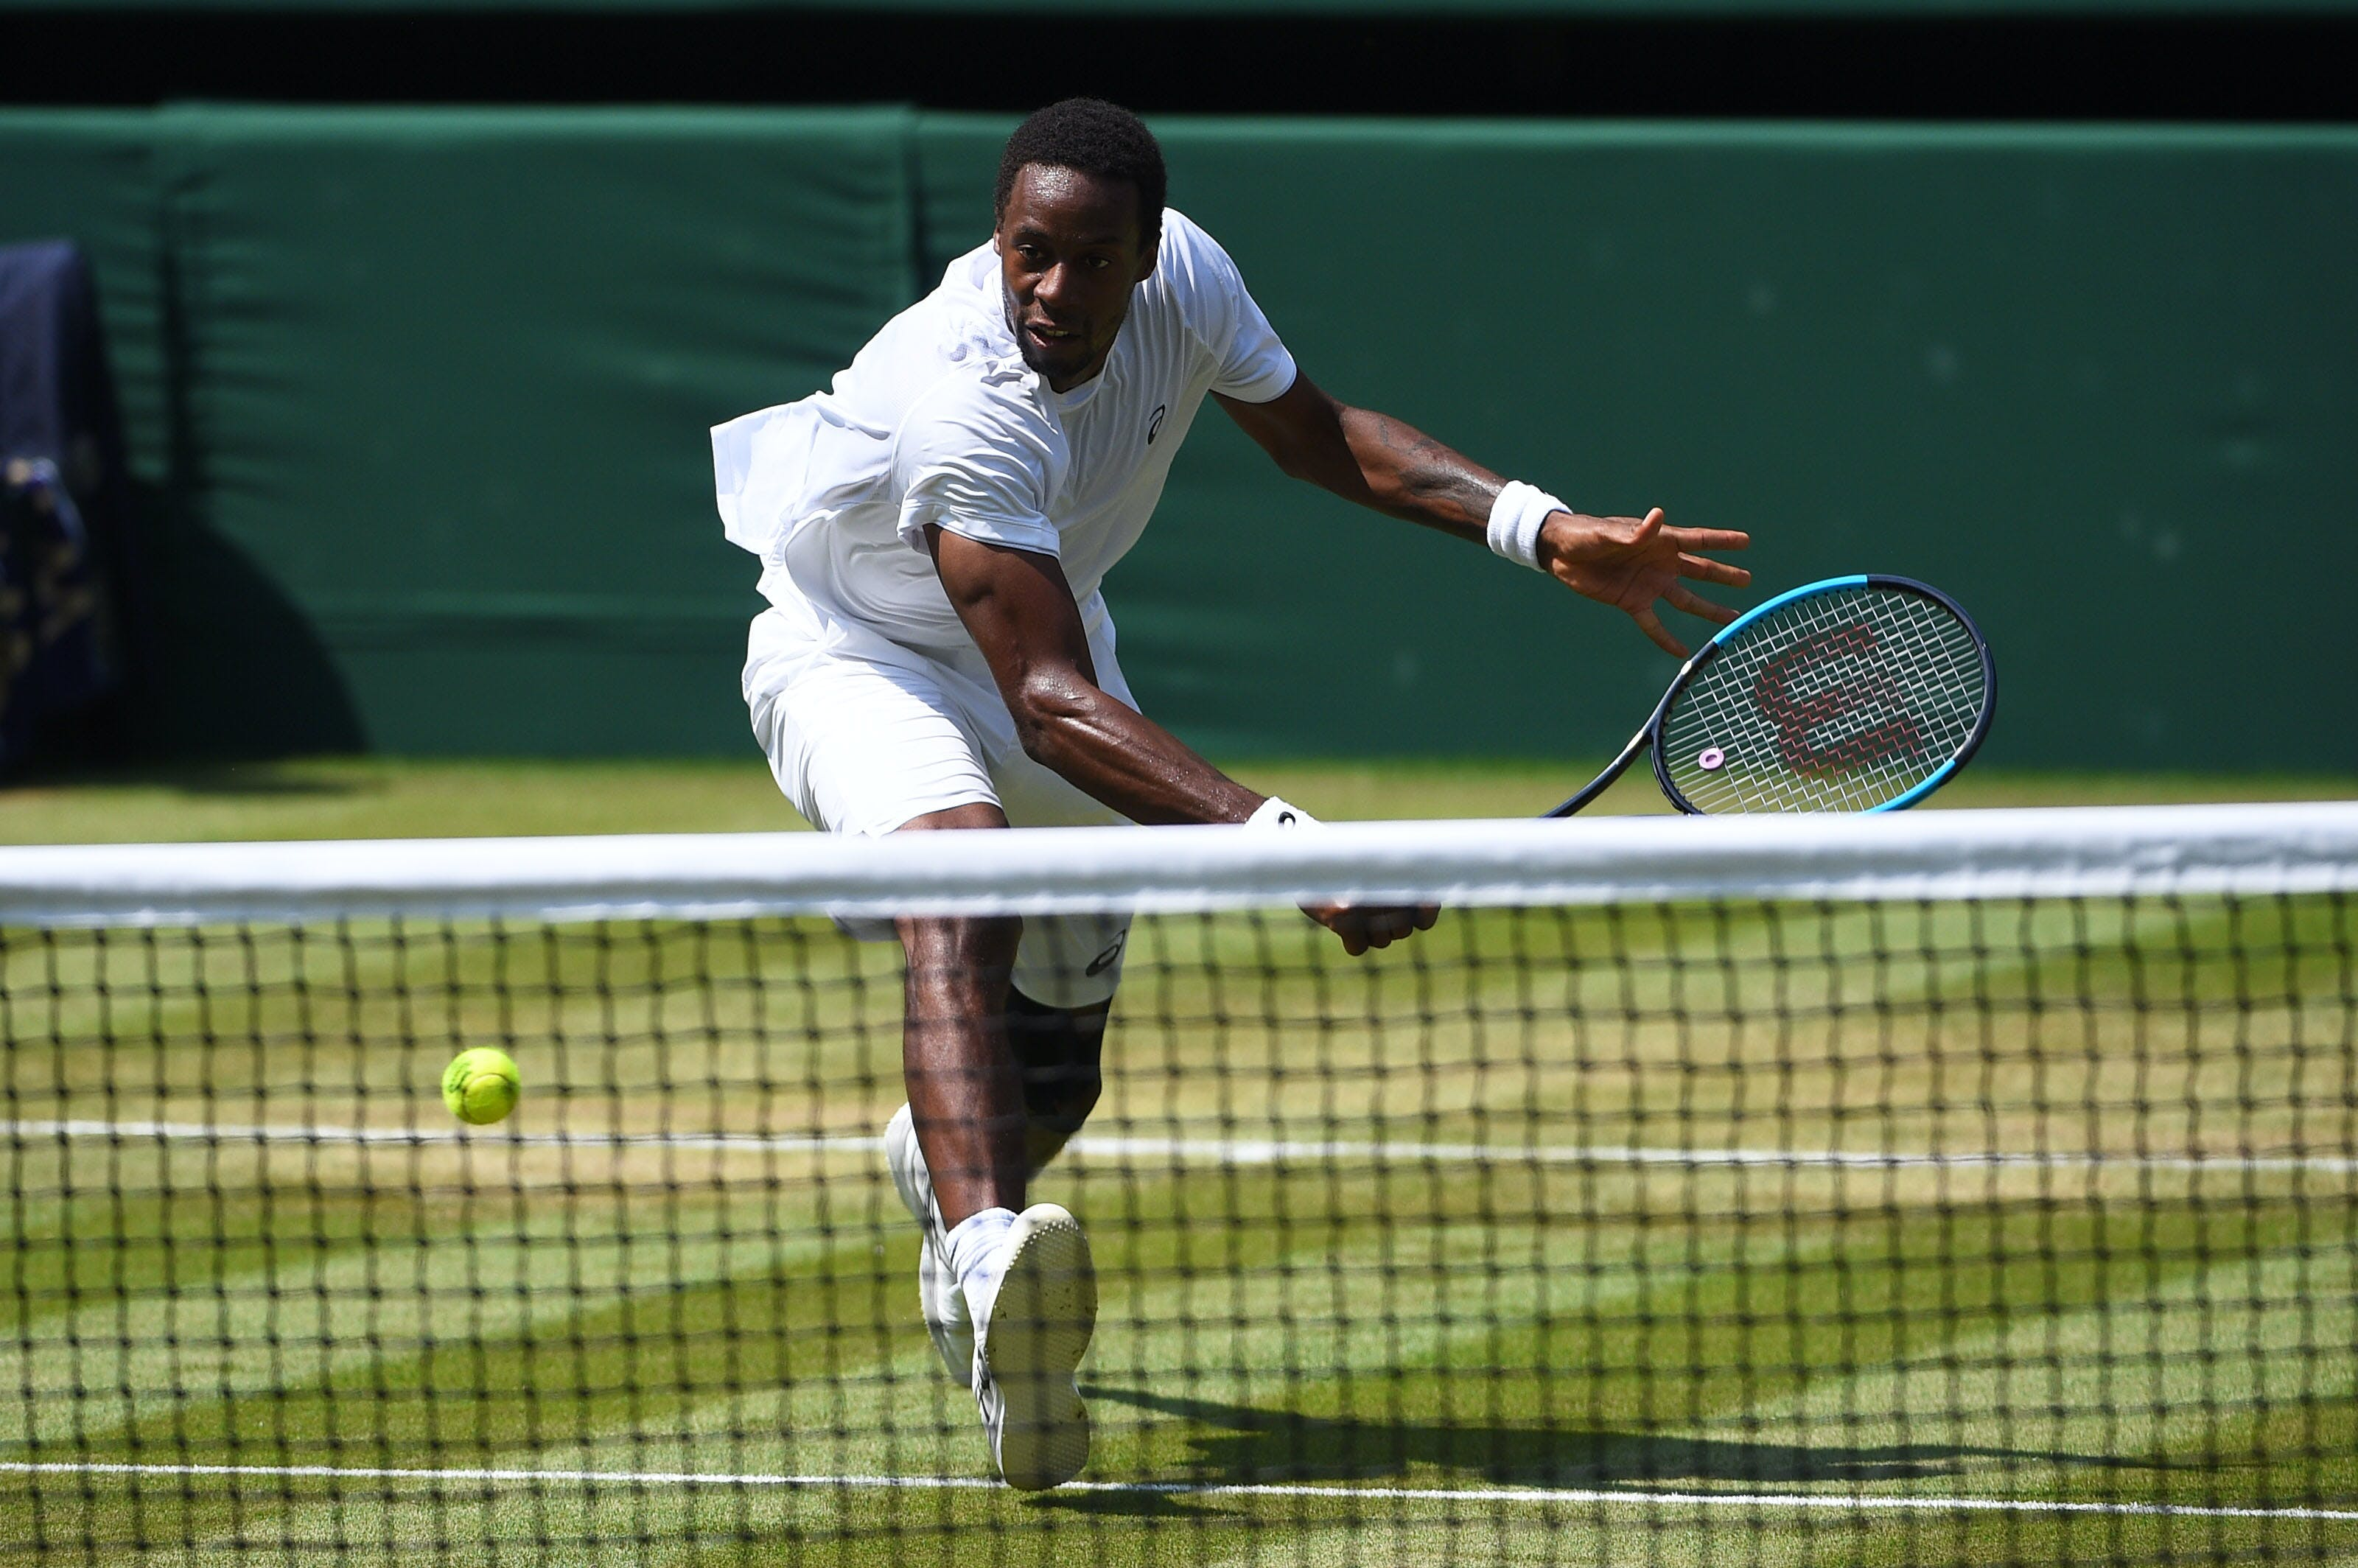 Gaël Monfils comes to the net at Wimbledon 2018.